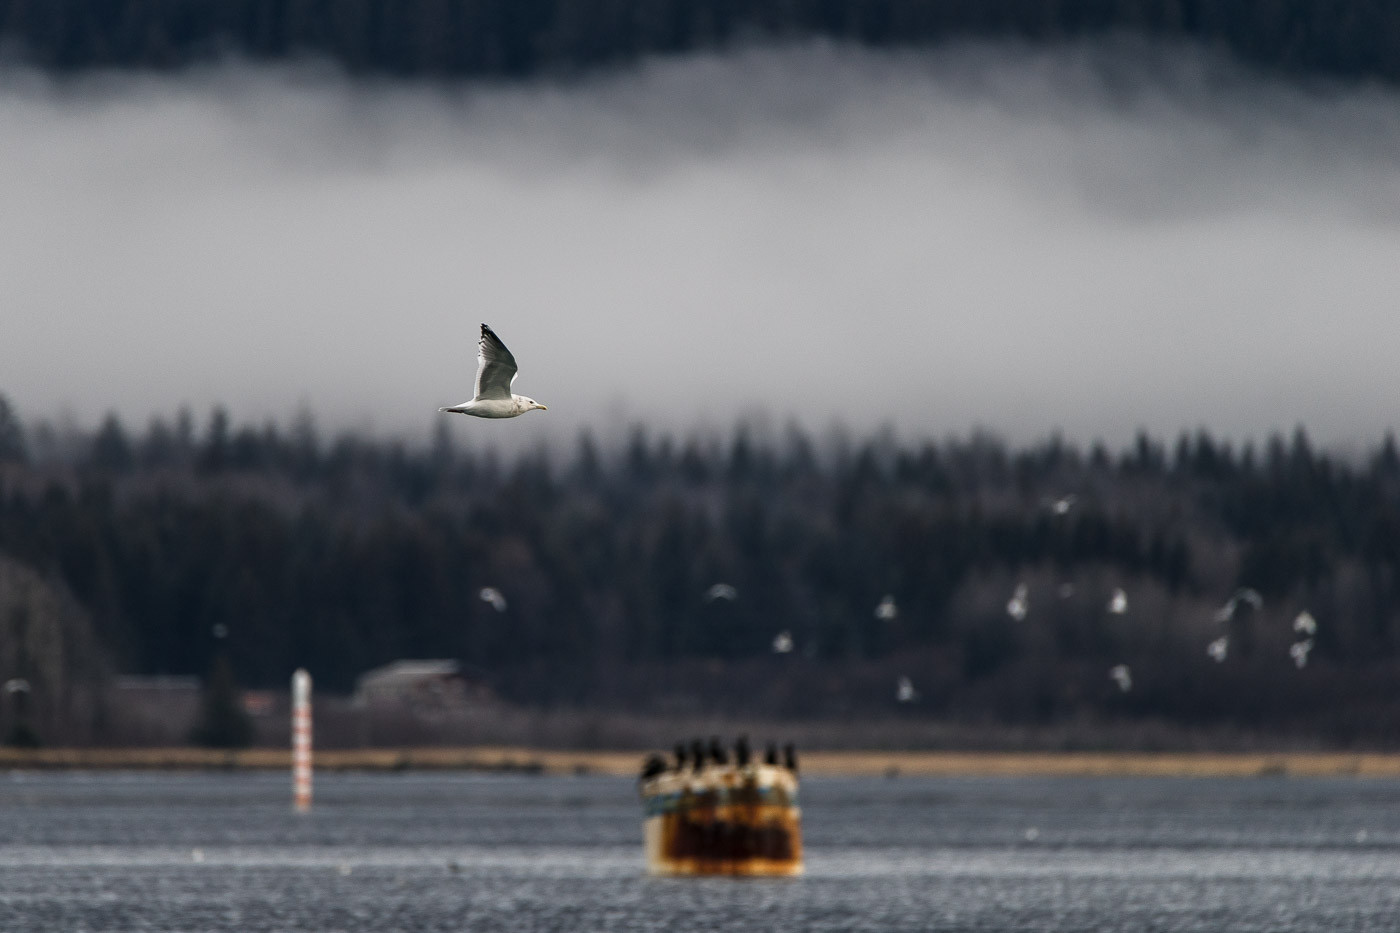 Herring Gull in Alaska with the Tamron 150-600mm f/5-6.3